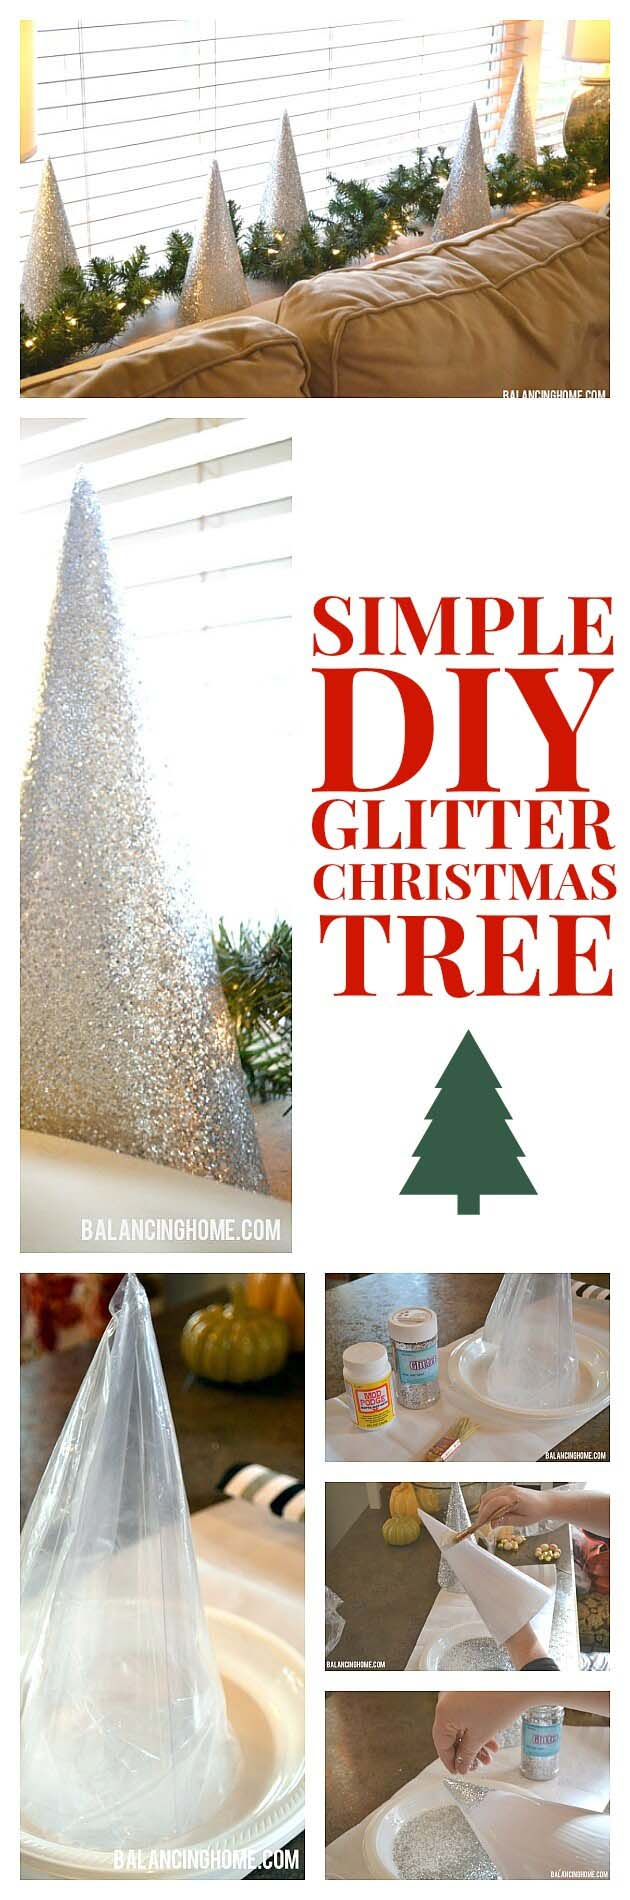 Quick and Cute DIY Glitter Christmas Tree #Christmas #crafts #decorations #decorhomeideas